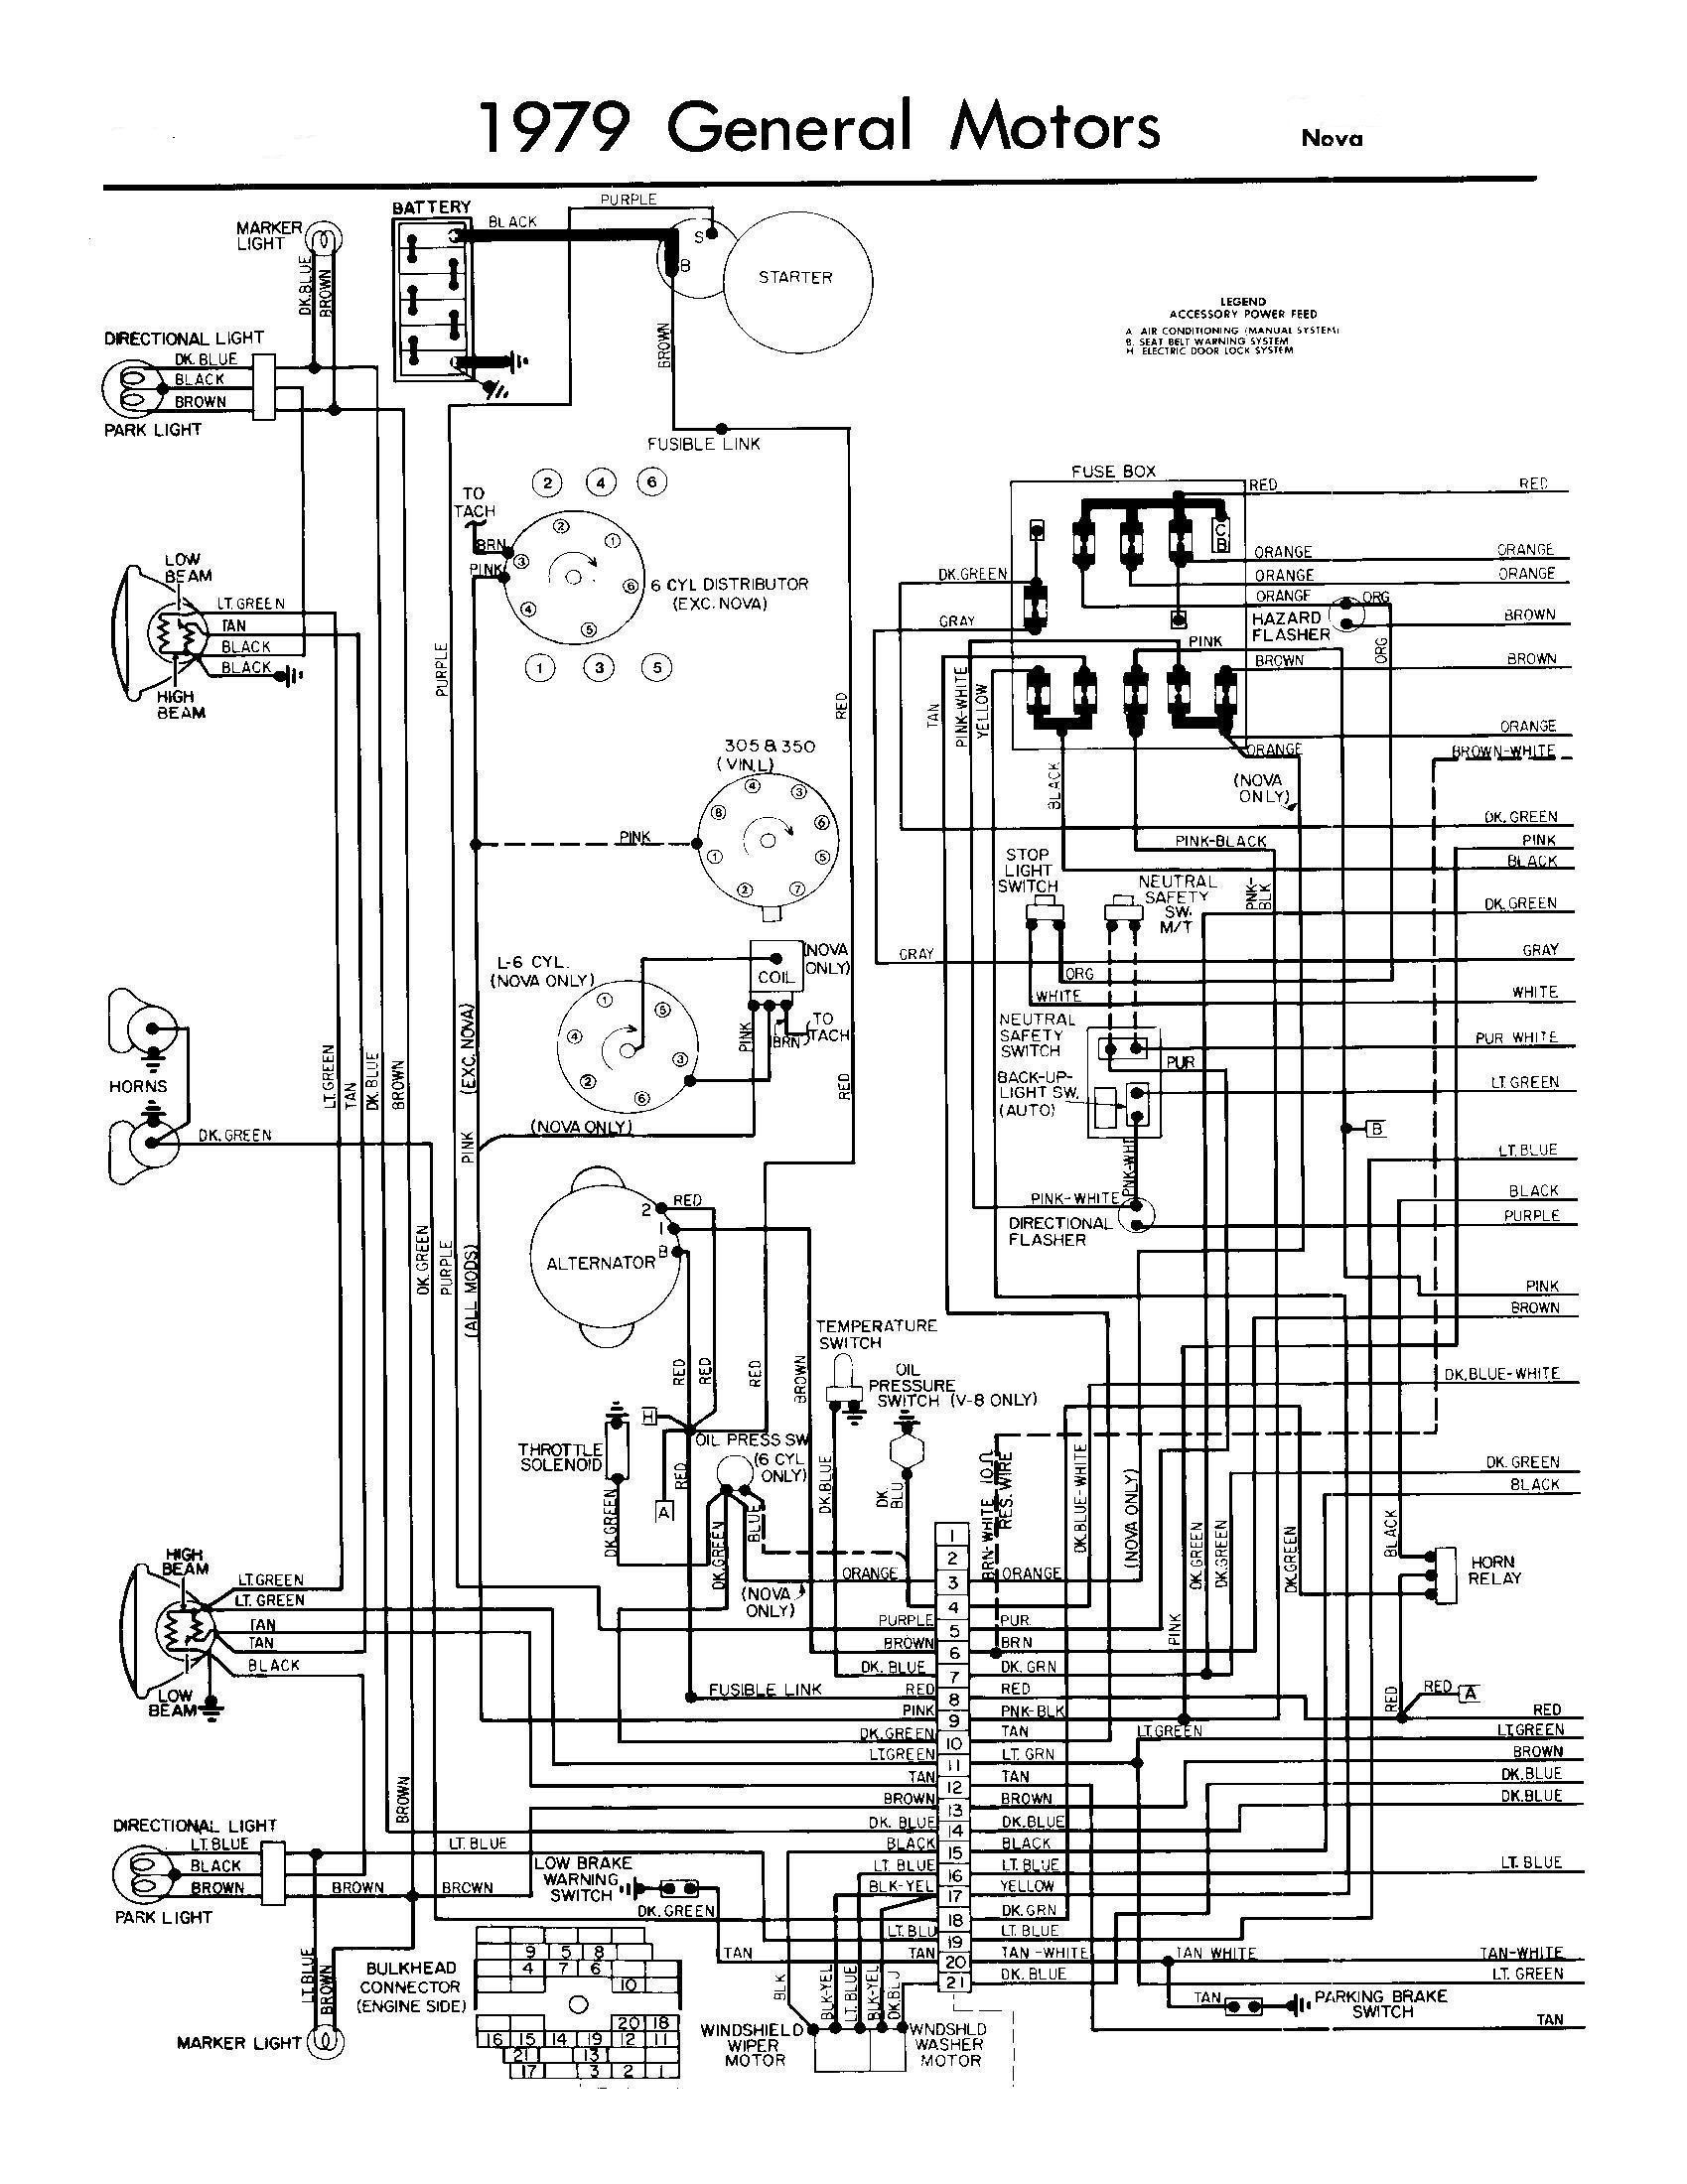 Vauxhall Nova Wiring Diagram Smart Diagrams 68 Chevy Truck Headlight Switch Free Download Rh Efluencia Co 1974